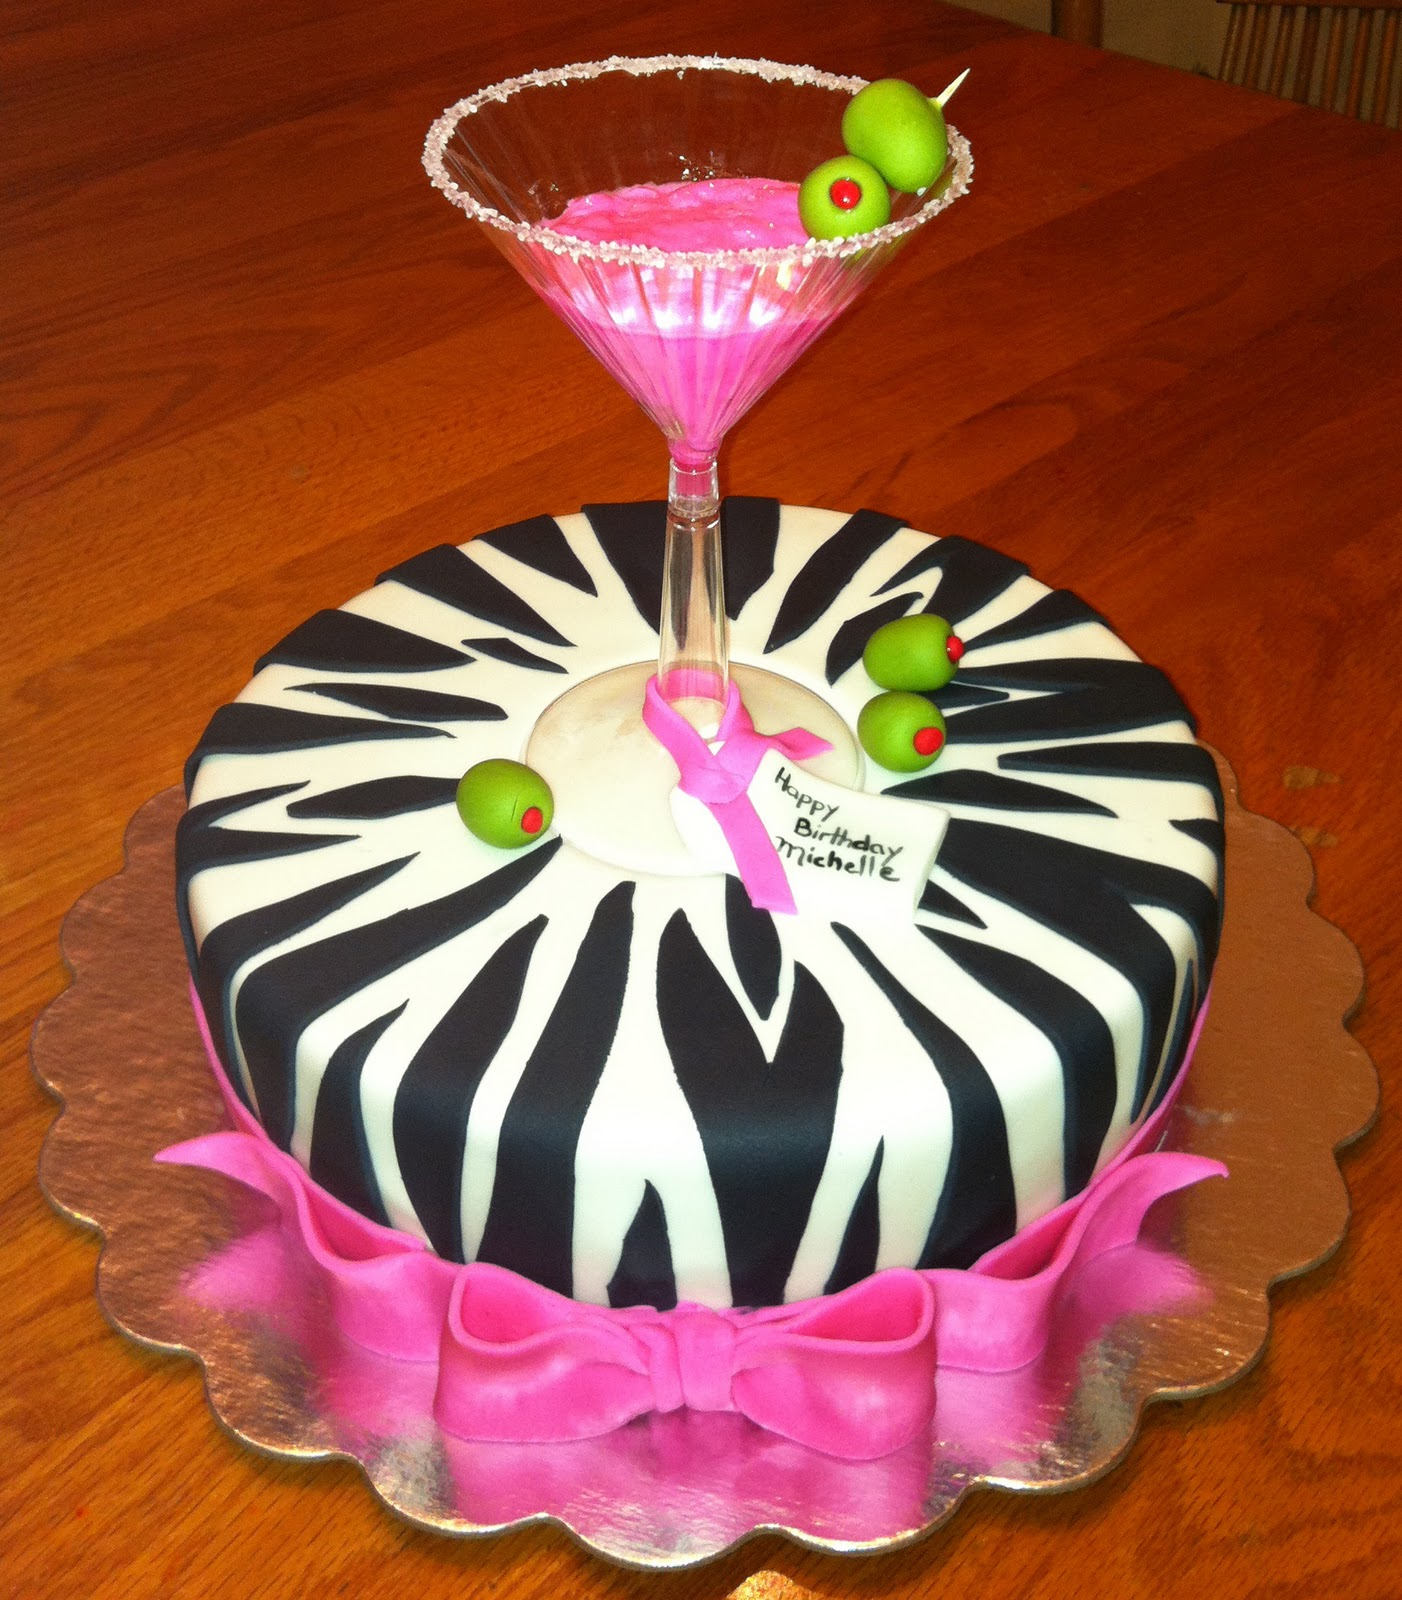 40th Birthday Cake (Martinis, Zebras And Such) On